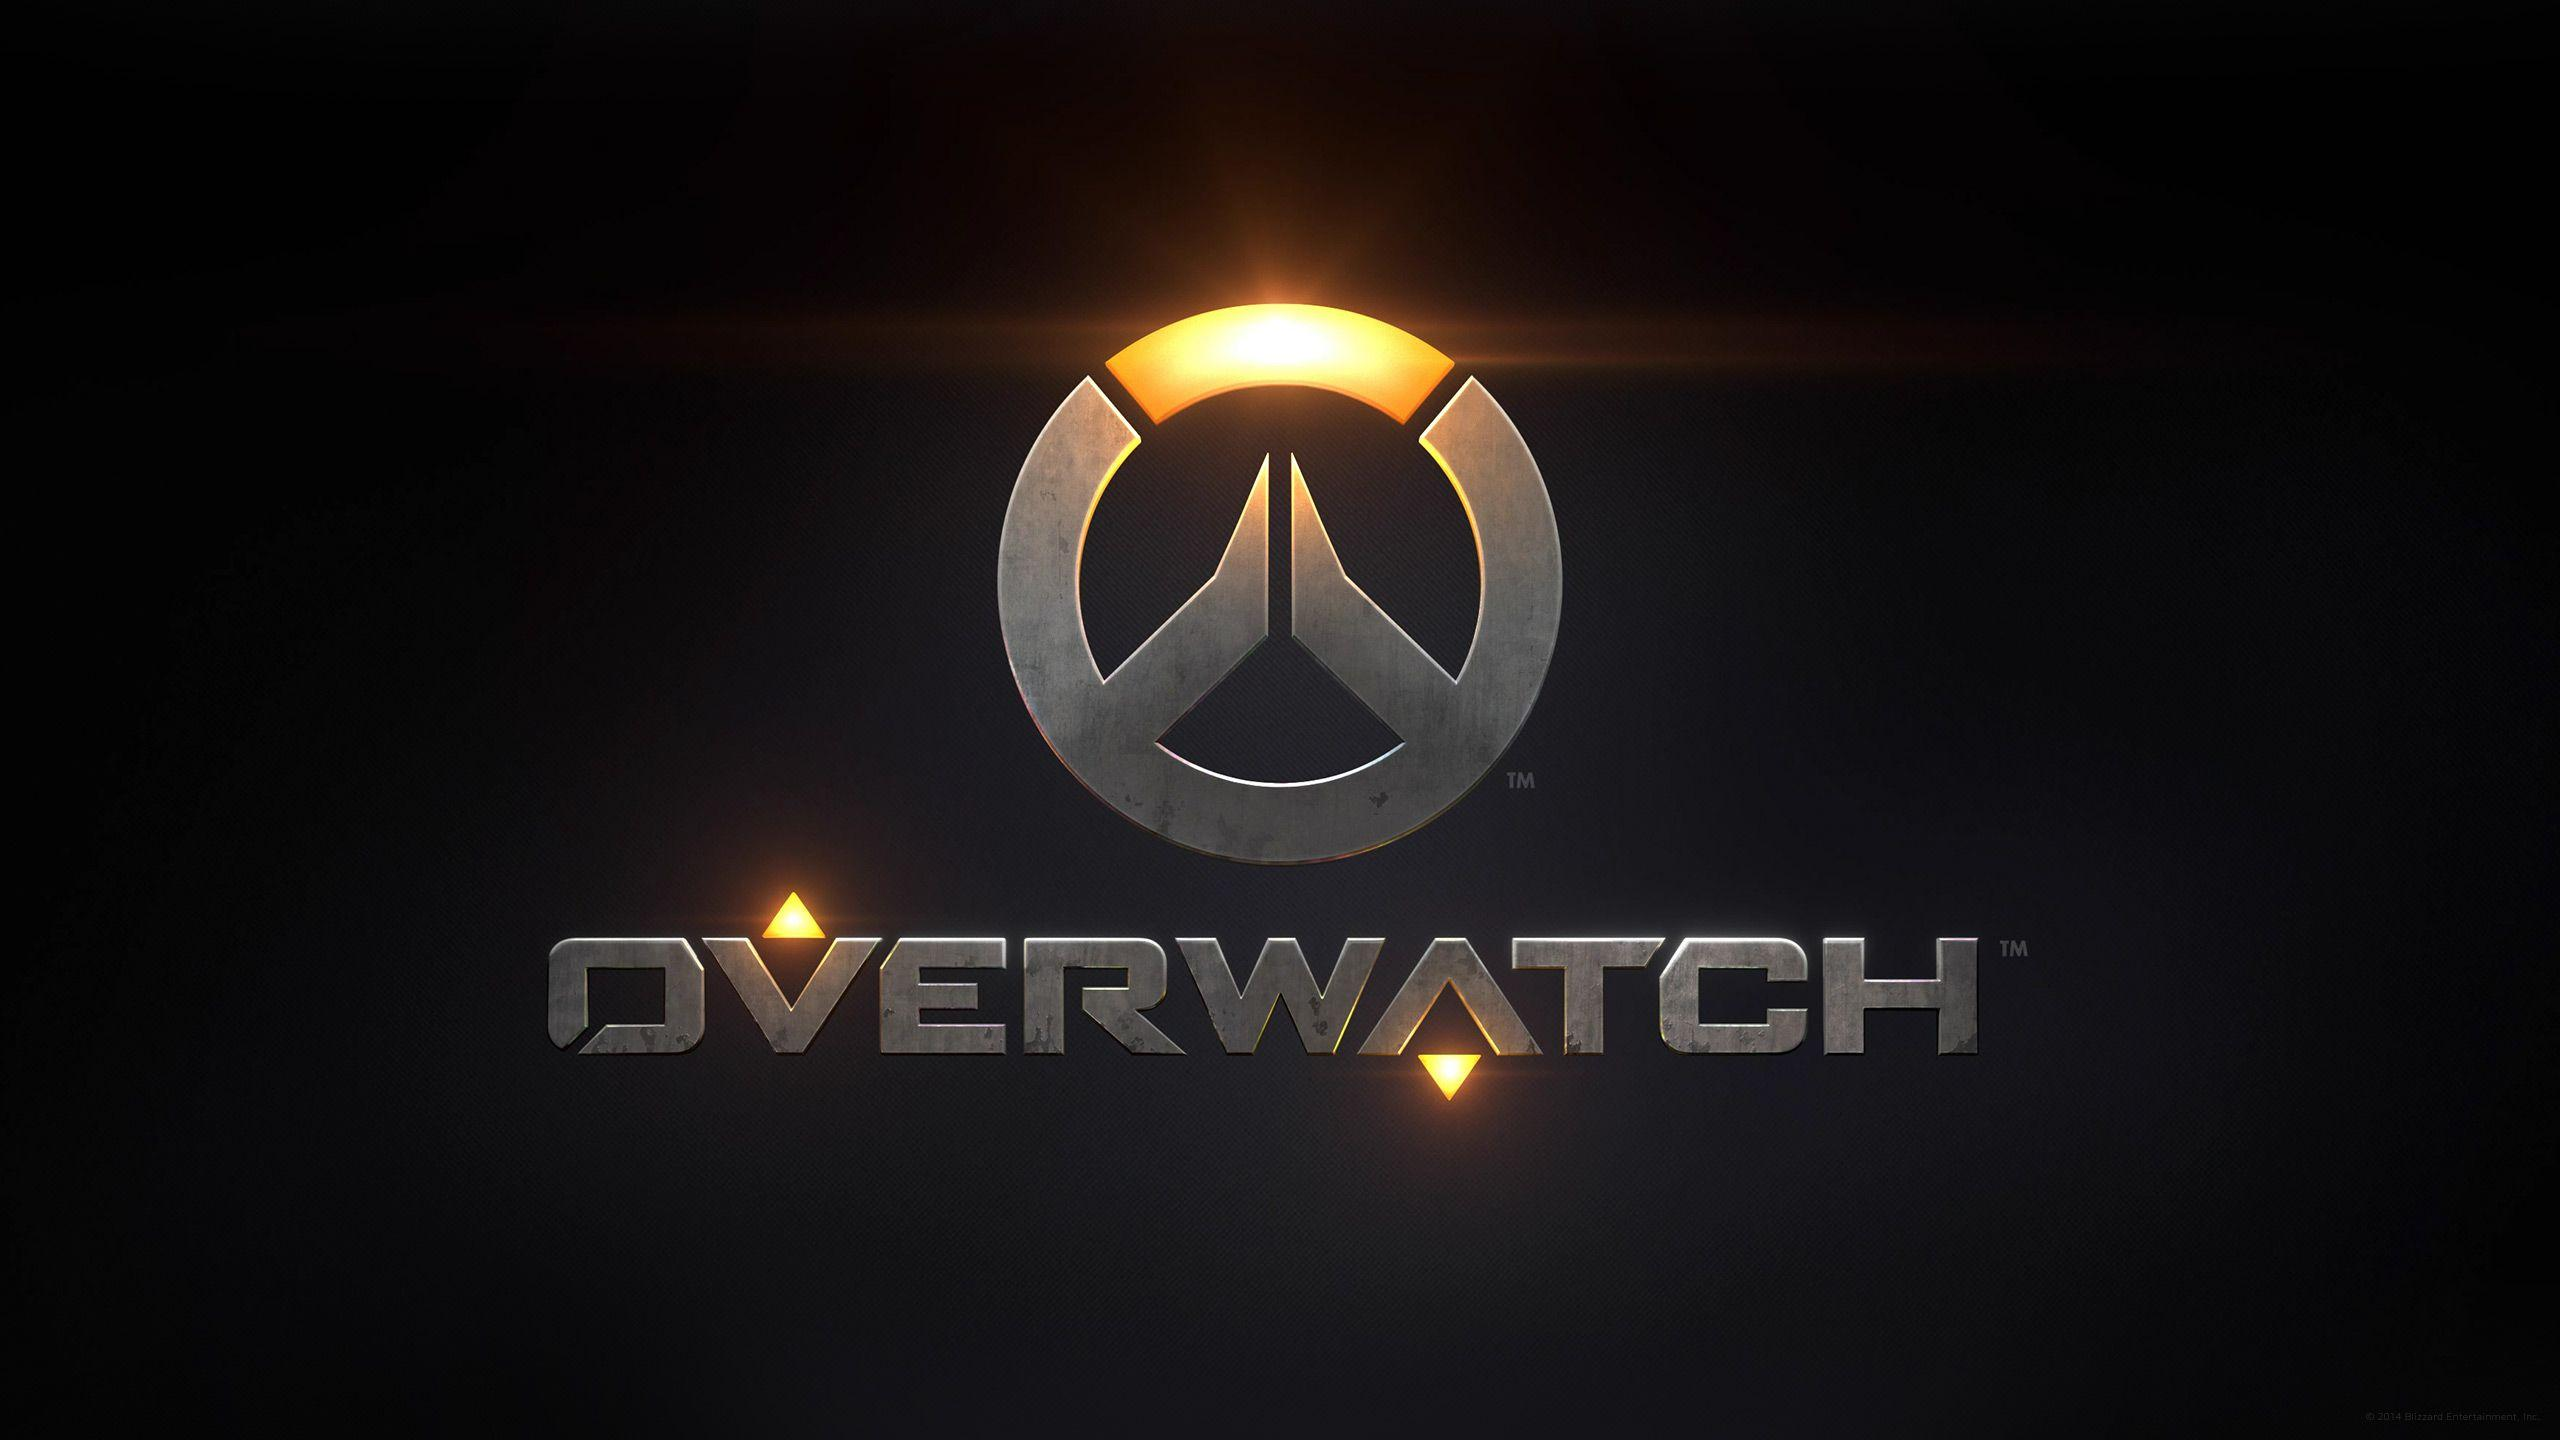 Overwatch Wallpapers, in Glorious 1440p!